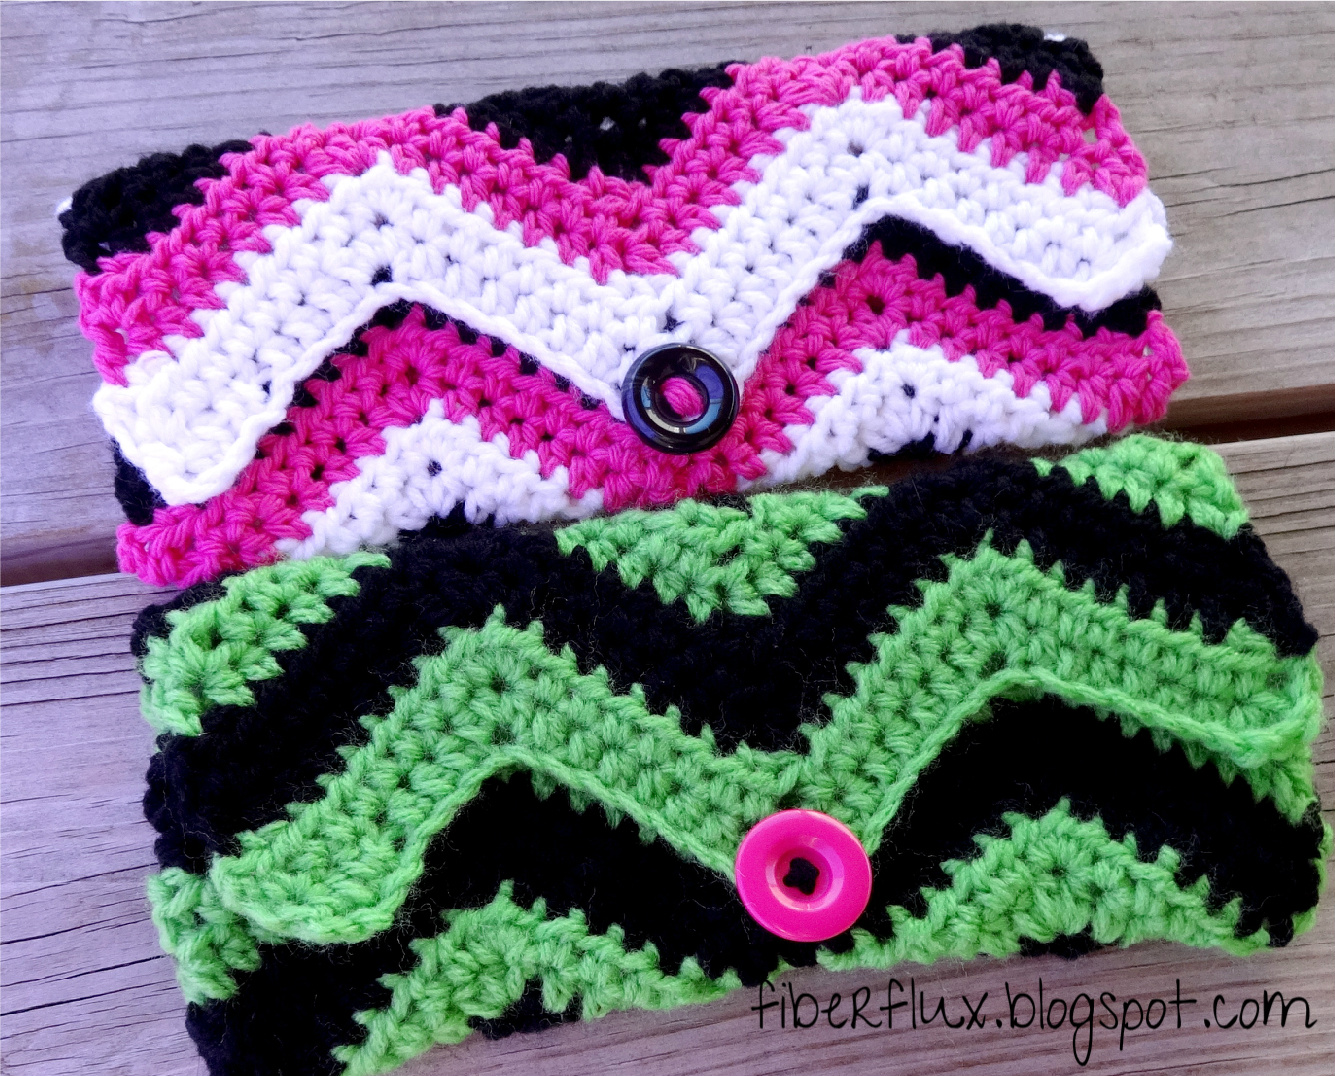 Free Crochet Clutch Pattern : Fiber Flux: Free Crochet Pattern...Graphic Chevron Clutch!